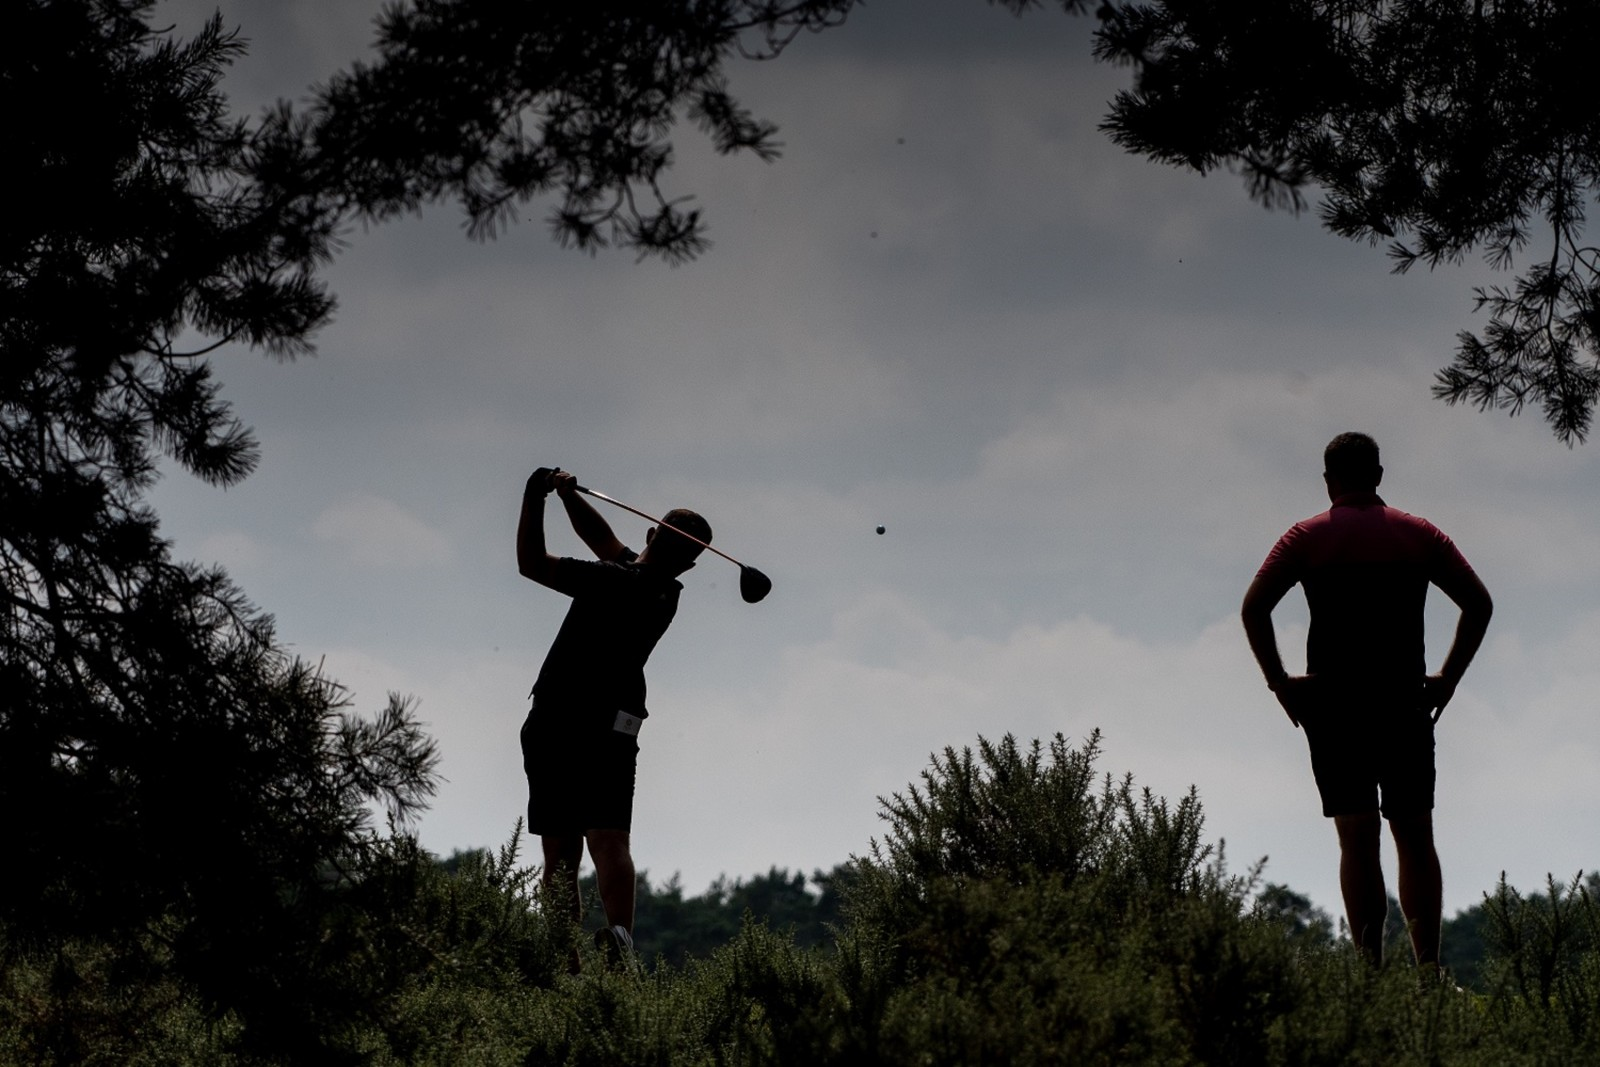 'Rounds played' surges by 40% in run up to Christmas - Golf News